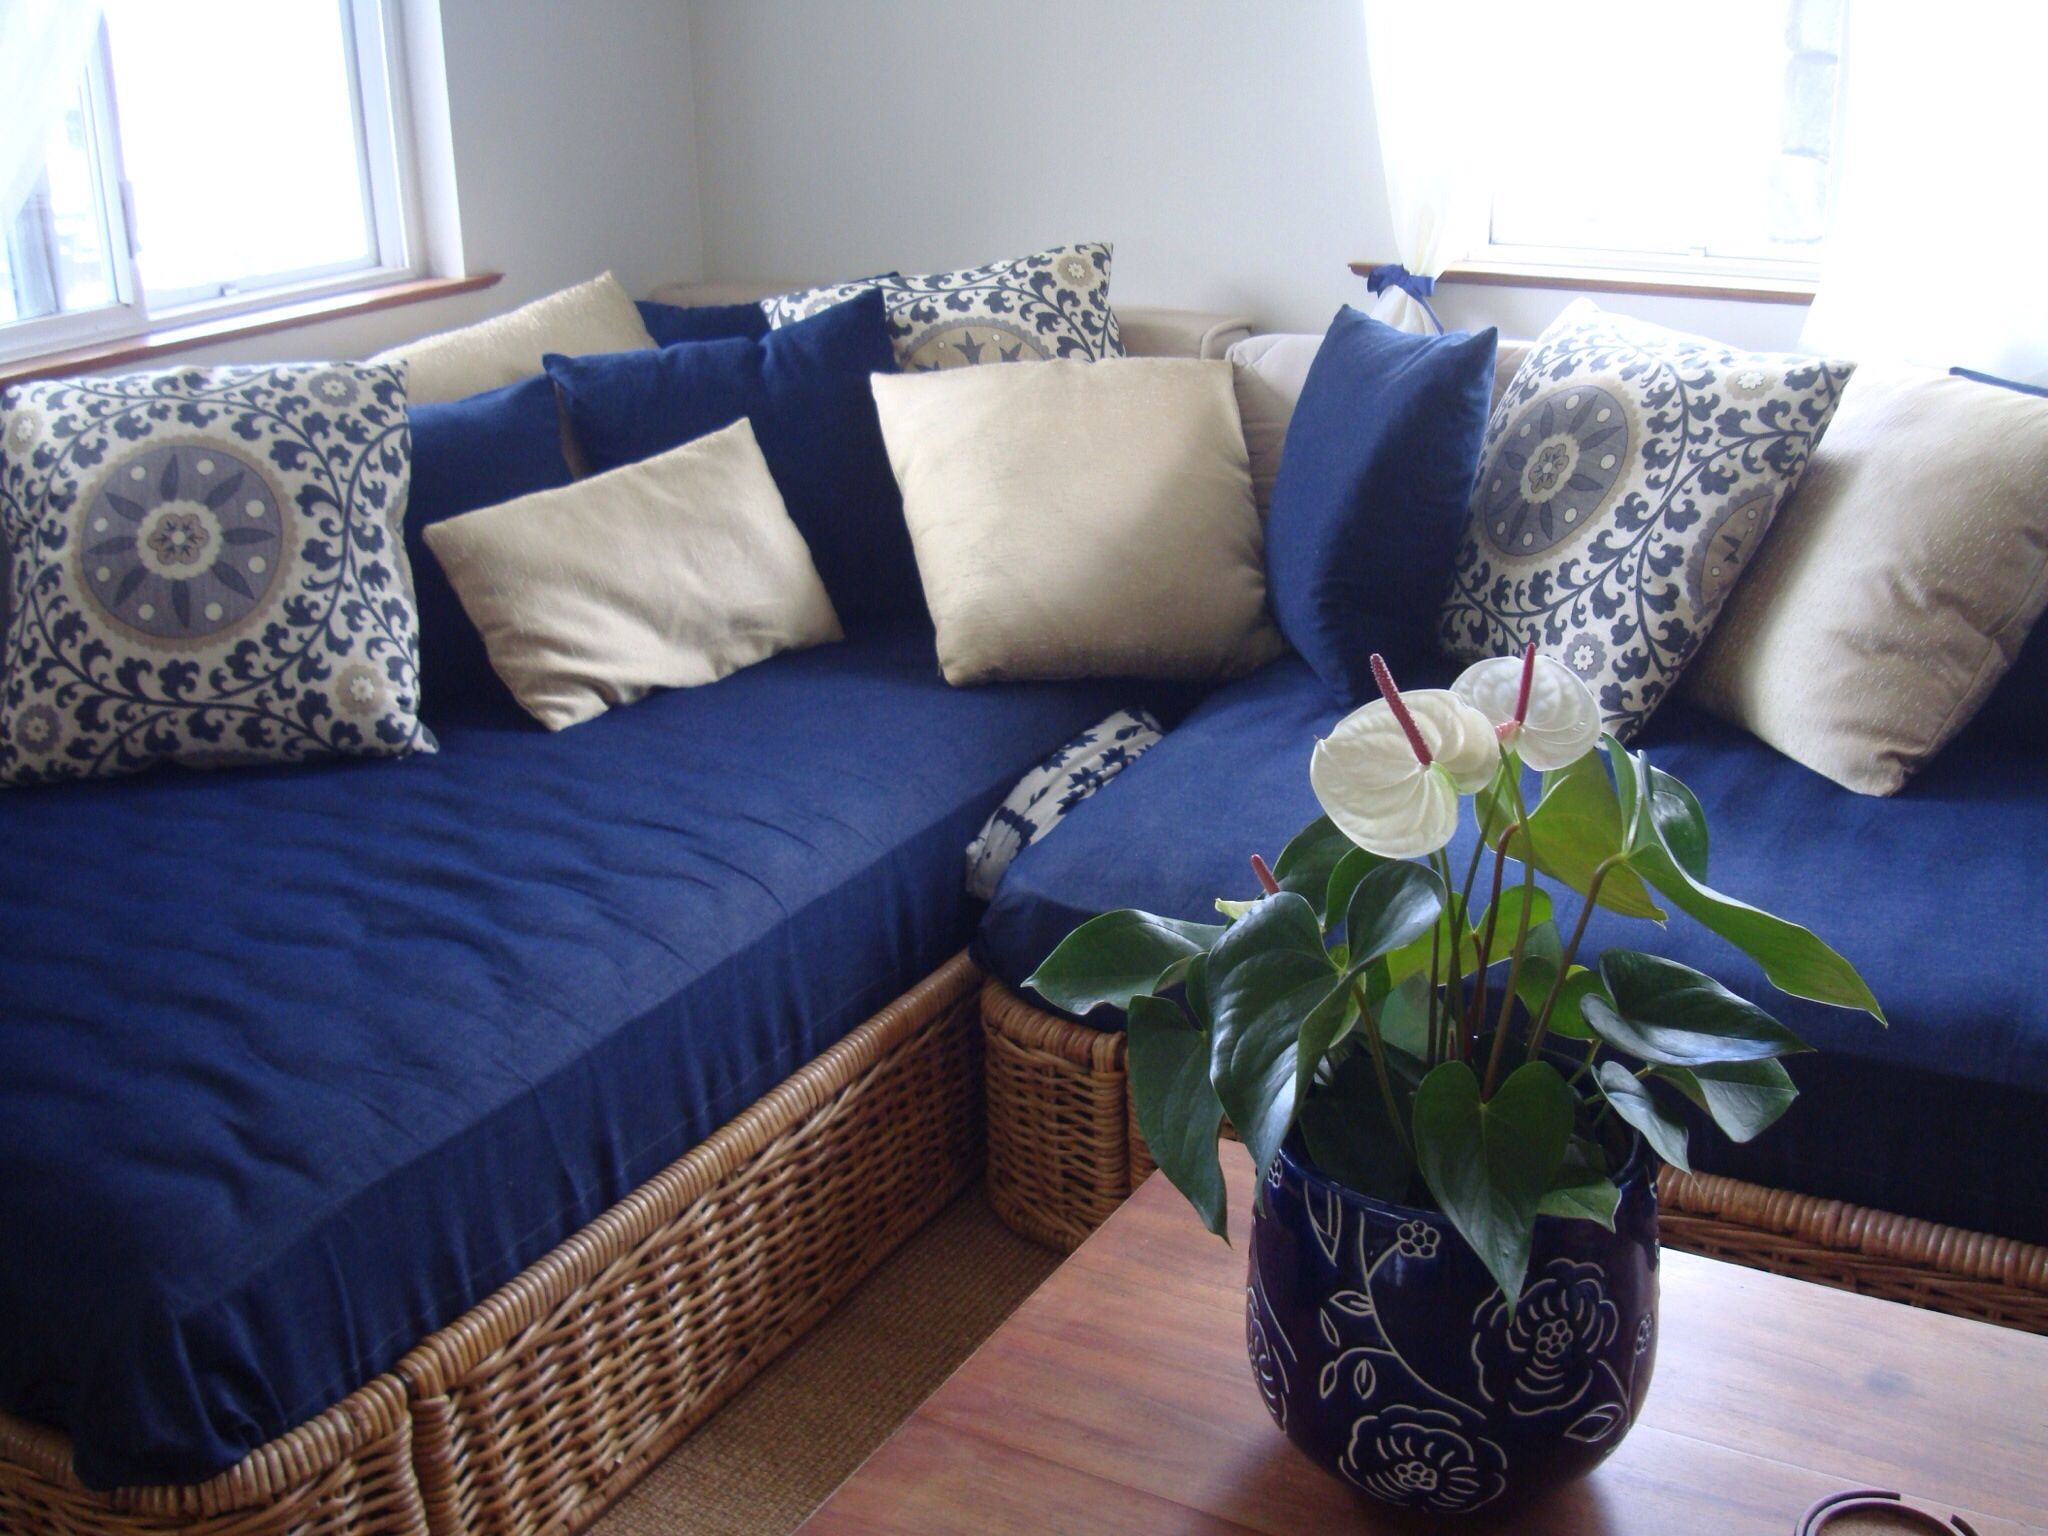 how sofa queen a cover furniture walmart to shop denim futon covers futons